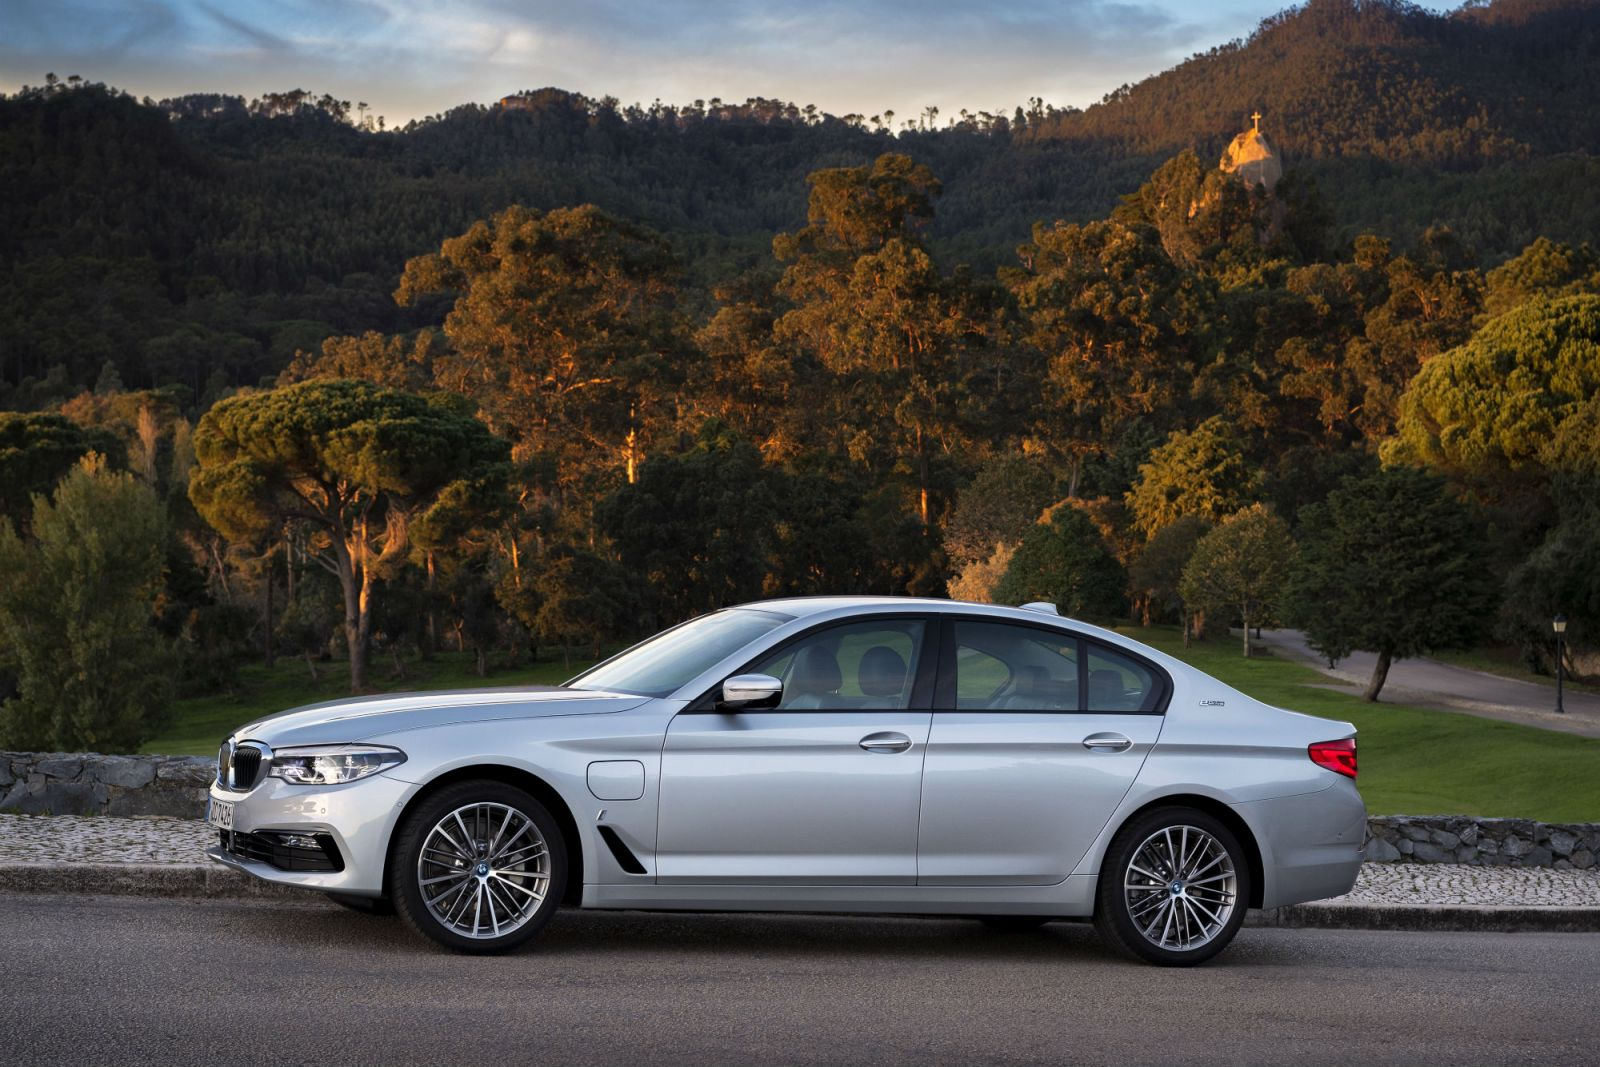 The BMW Group reported its best first four months ever in global sales with a 5.8% increase year over year. Part of the reason was the new 5 Series — including the BMW 530e iPerformance — generating more than 27,000 sales in its first full month on sale in April. (Photo/Provided)